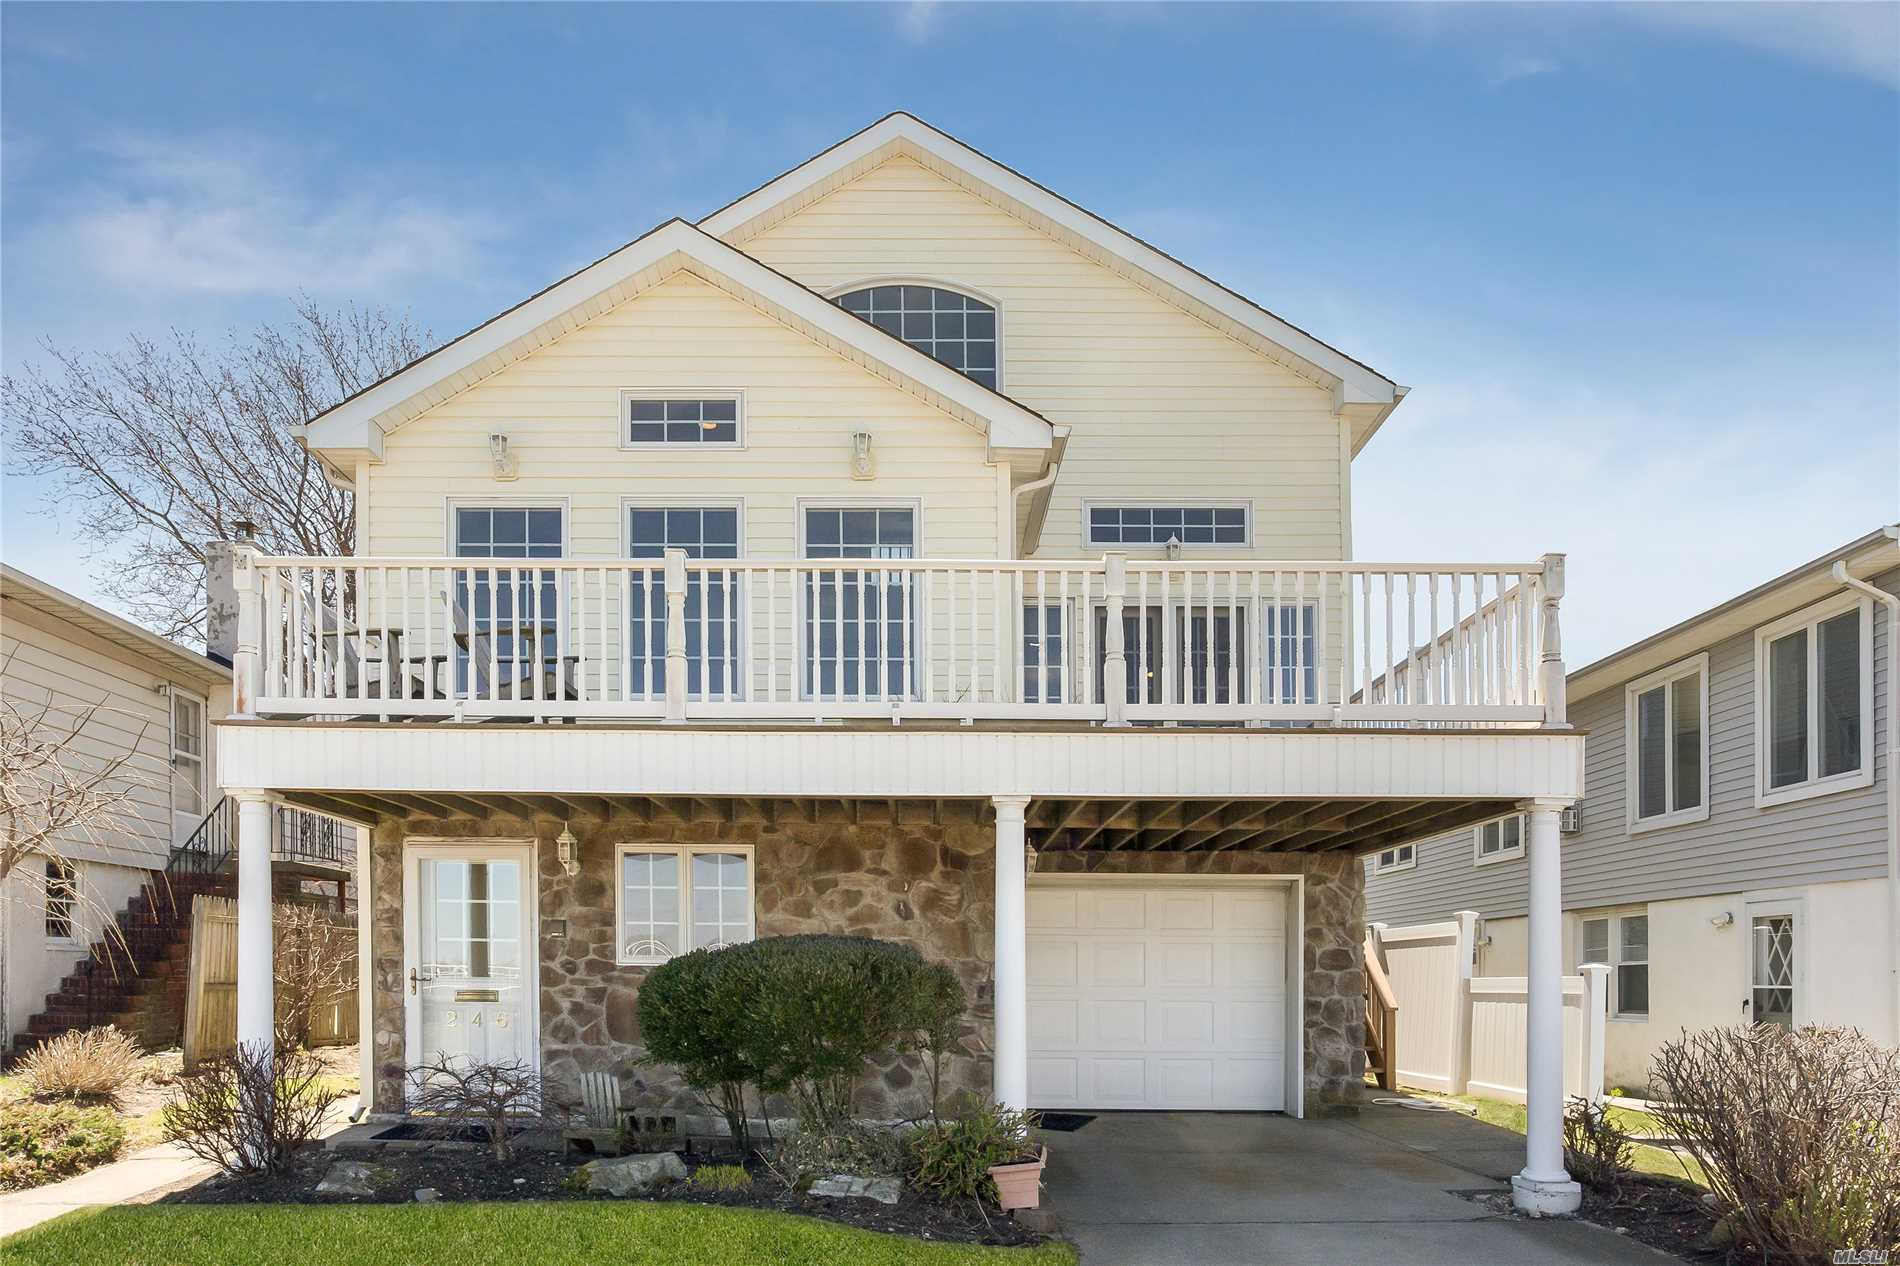 246 W Bay Dr - Long Beach, New York